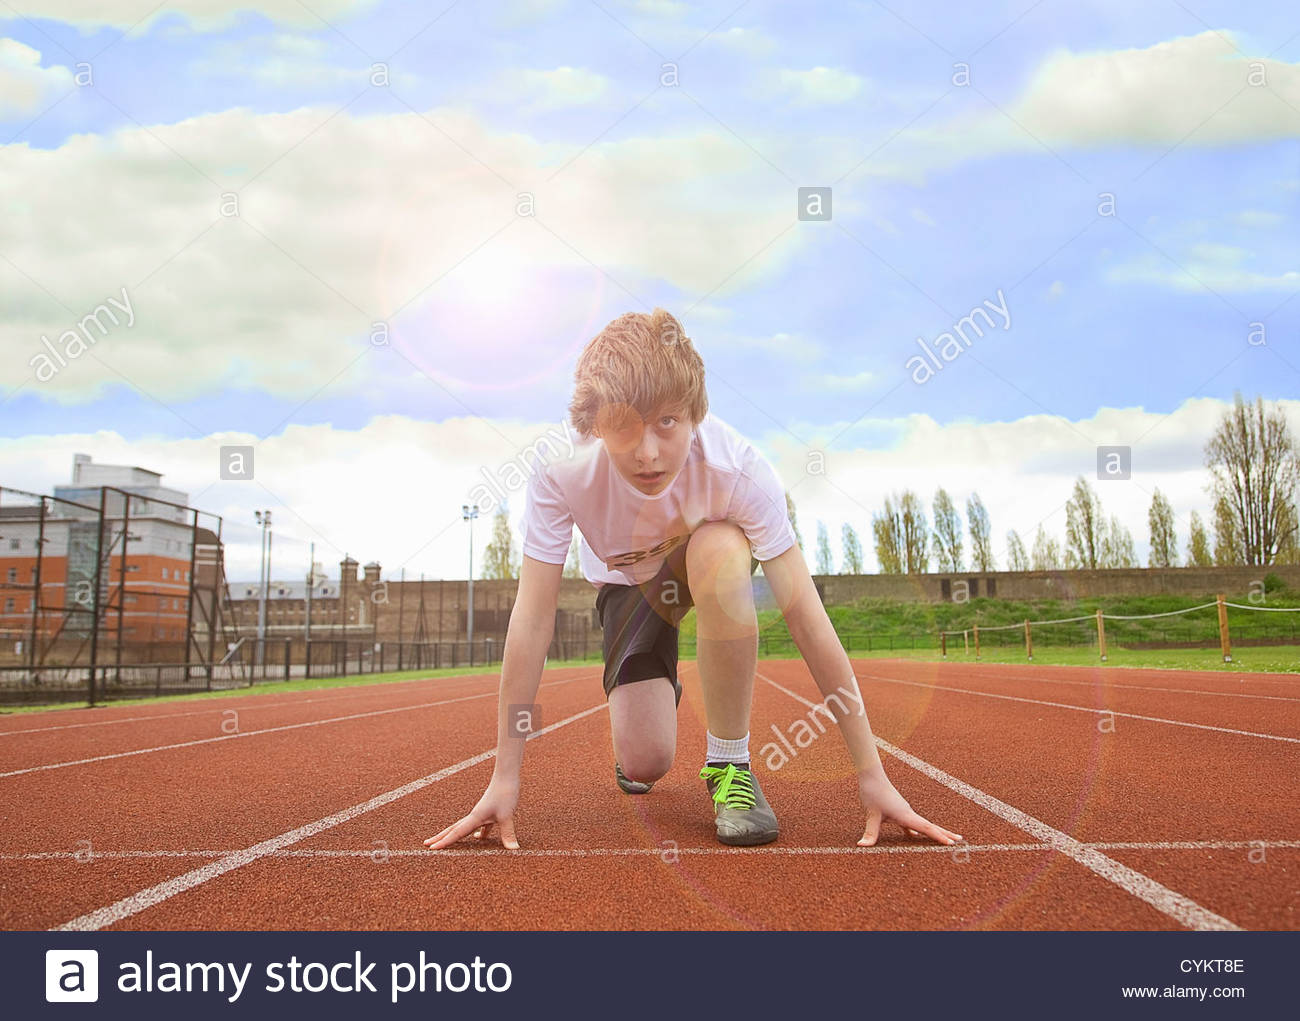 Boy crouched at starting line on track - Stock Image